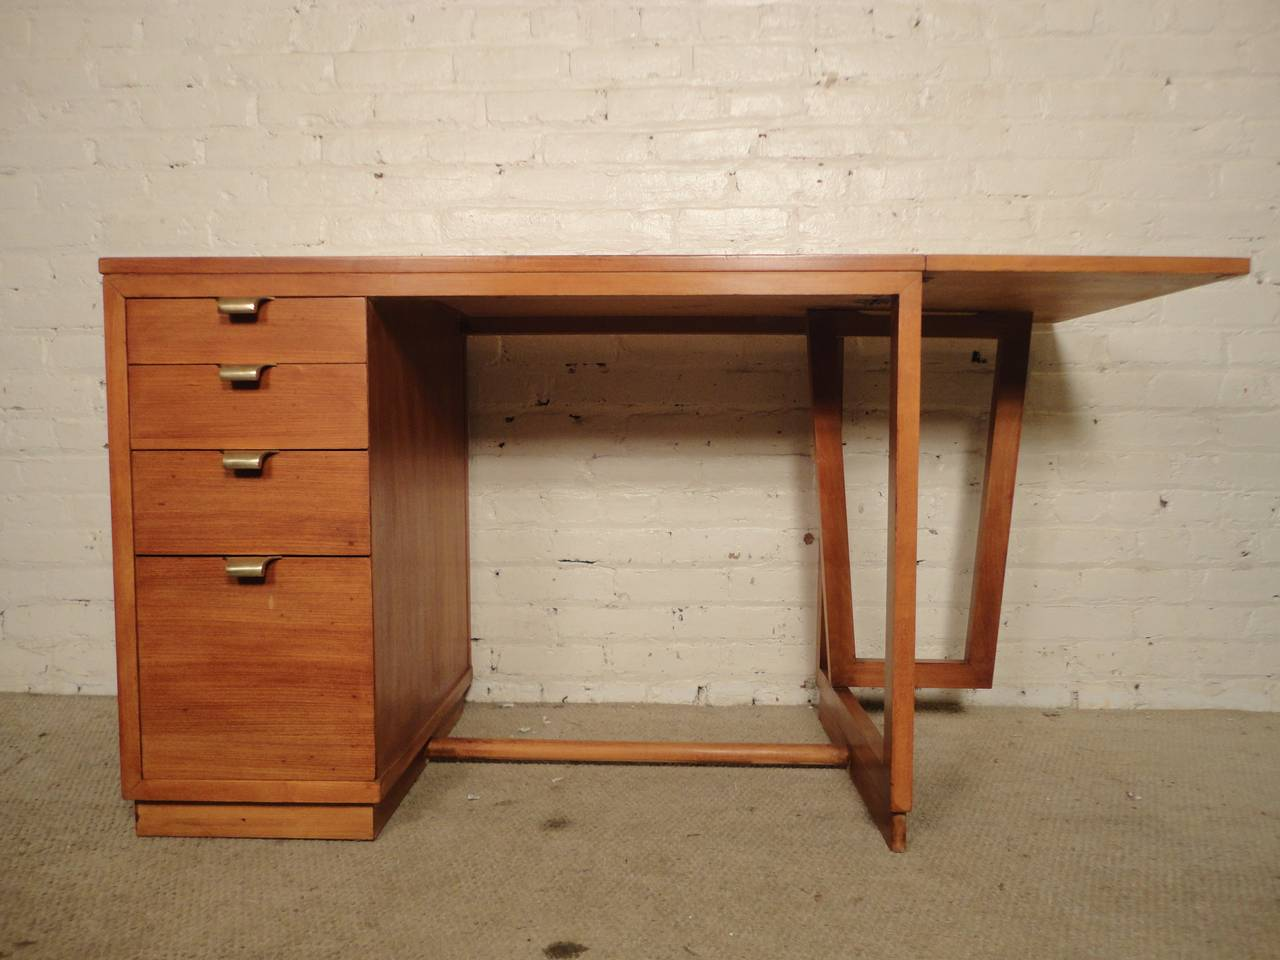 Mid Century Modern Writing Desk By Edward Wormley With Functioning Drop Leaf Extension Made